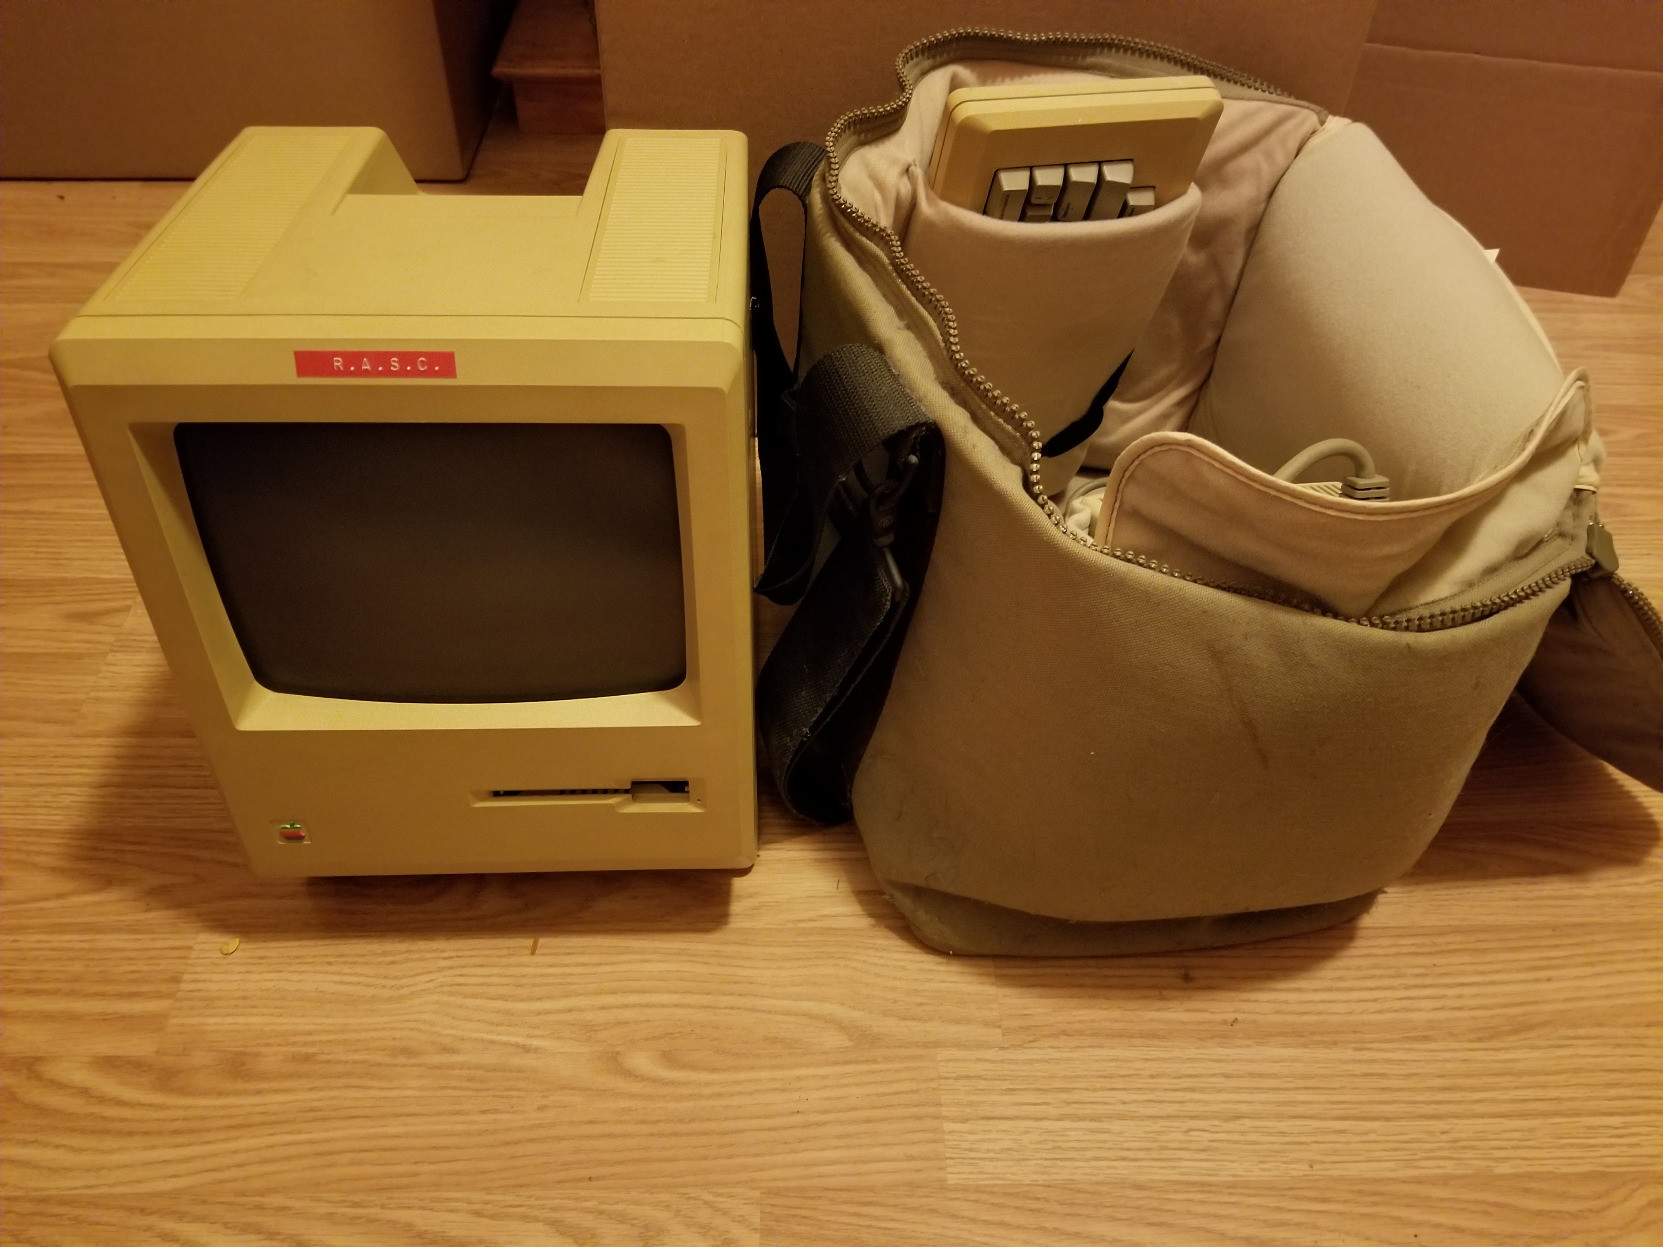 An original-style Mac next to an open carrying case, which also has the keyboard and external disk drive (and the mouse, not seen). The Mac has a piece of tape with R.A.S.C. stamped on it.